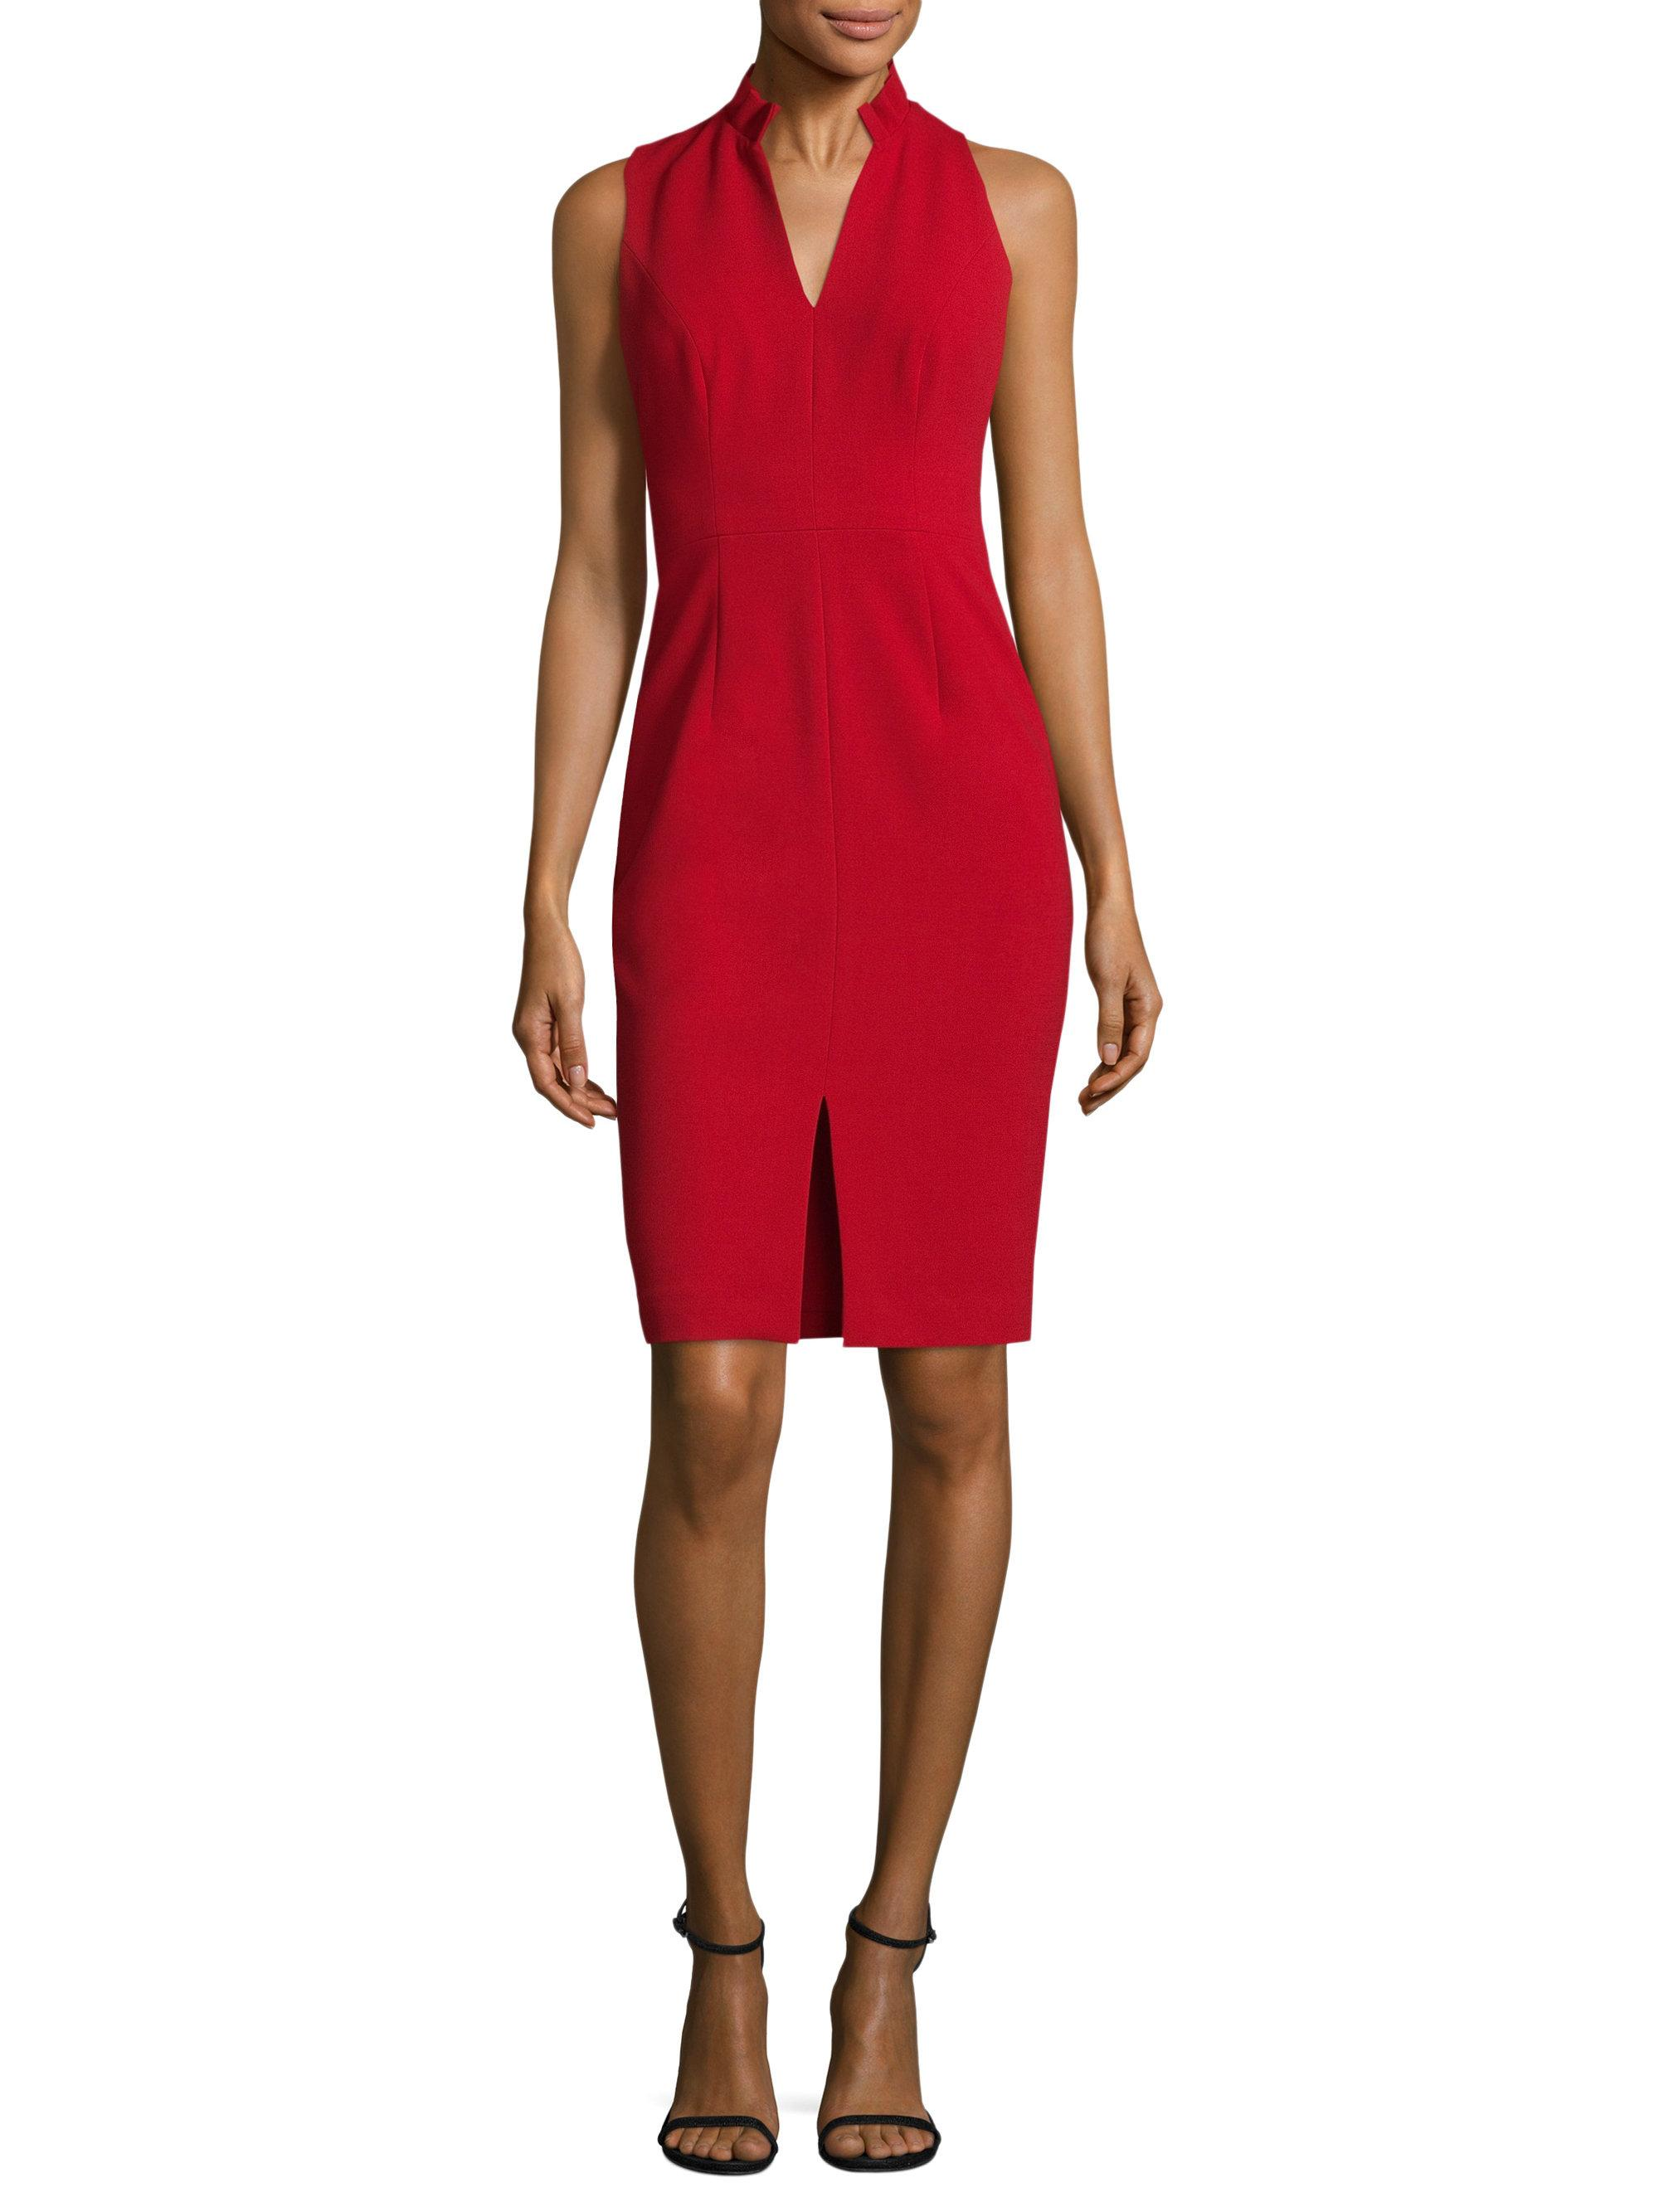 Lyst black halo antoinette sheath dress in red for Saks fifth avenue wedding guest dresses